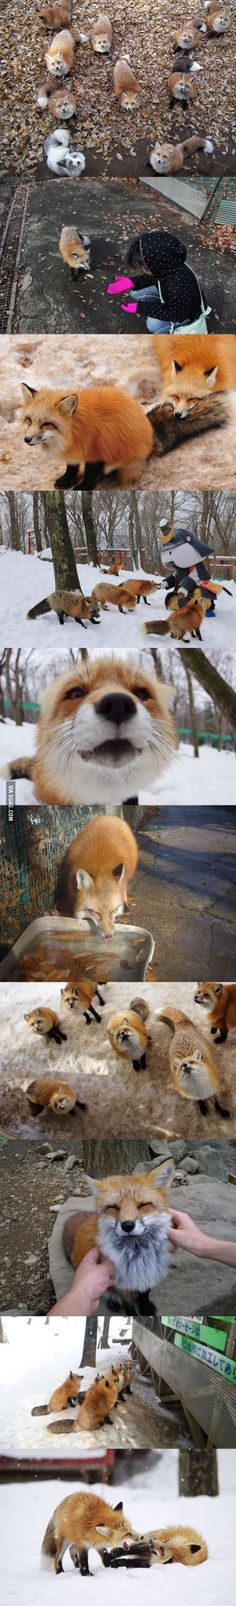 Fox Village in Japan. This is in the mountains near Shiroishi. (Japantravel.com)